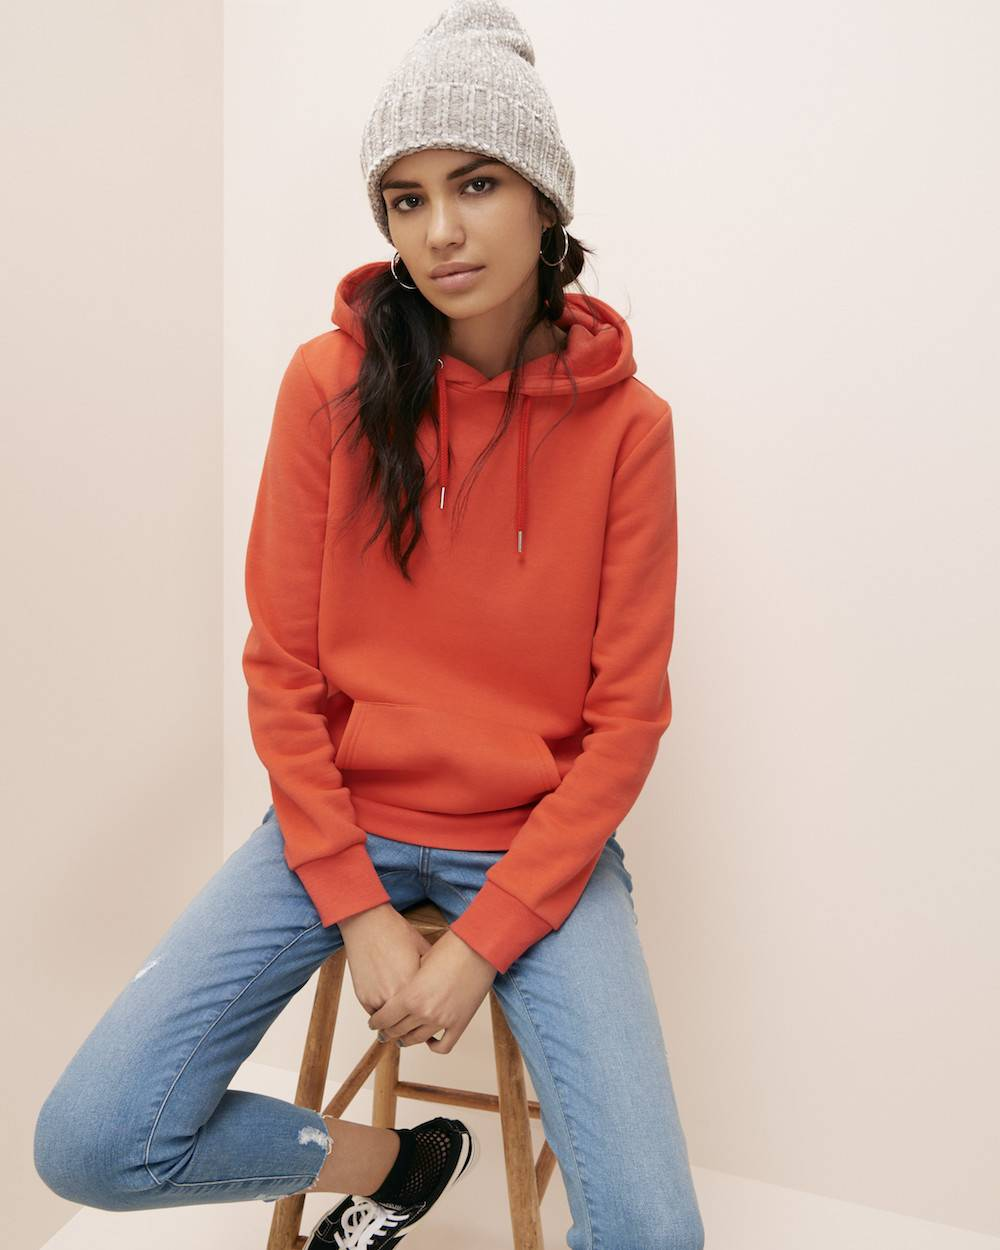 335003_20.04.2017_Primark_AW_New_Value_Womens_JW_RBO_D8_HOODYTABLE_053